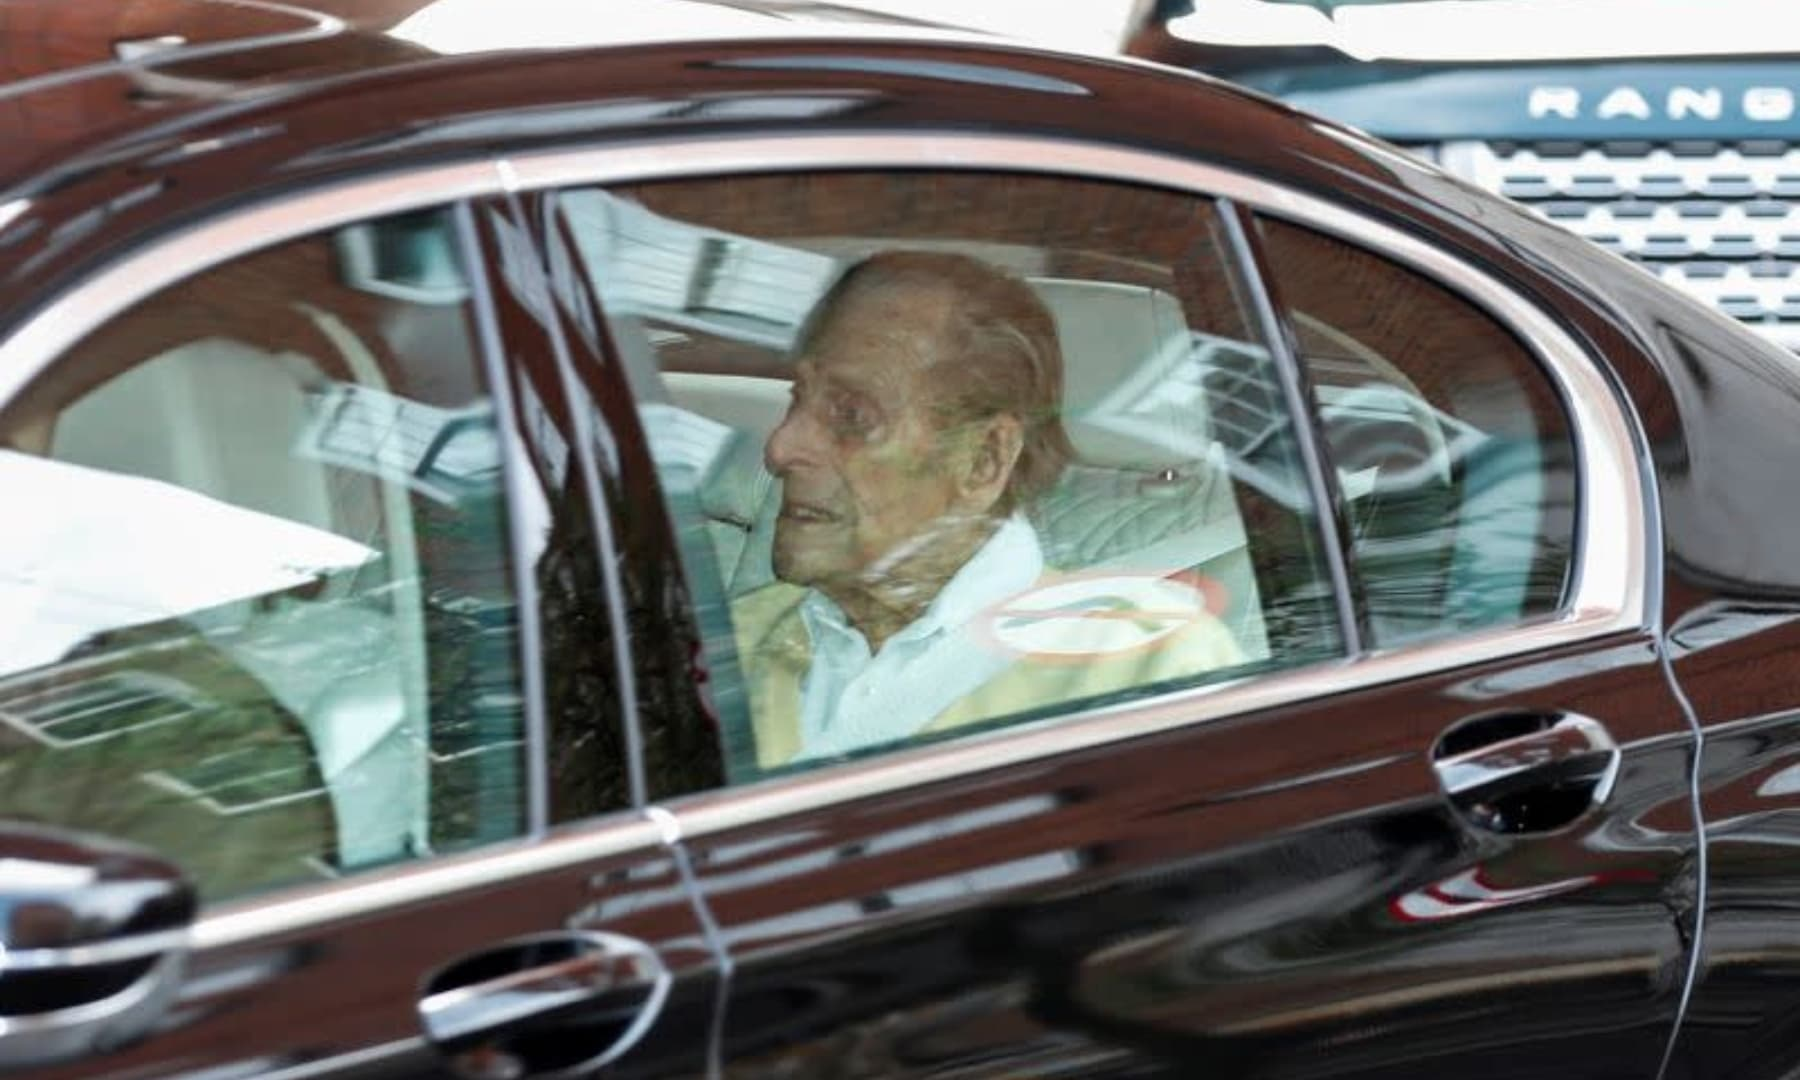 Britain's Prince Philip leaves King Edward VII's Hospital in London, Britain, March 16. — Reuters